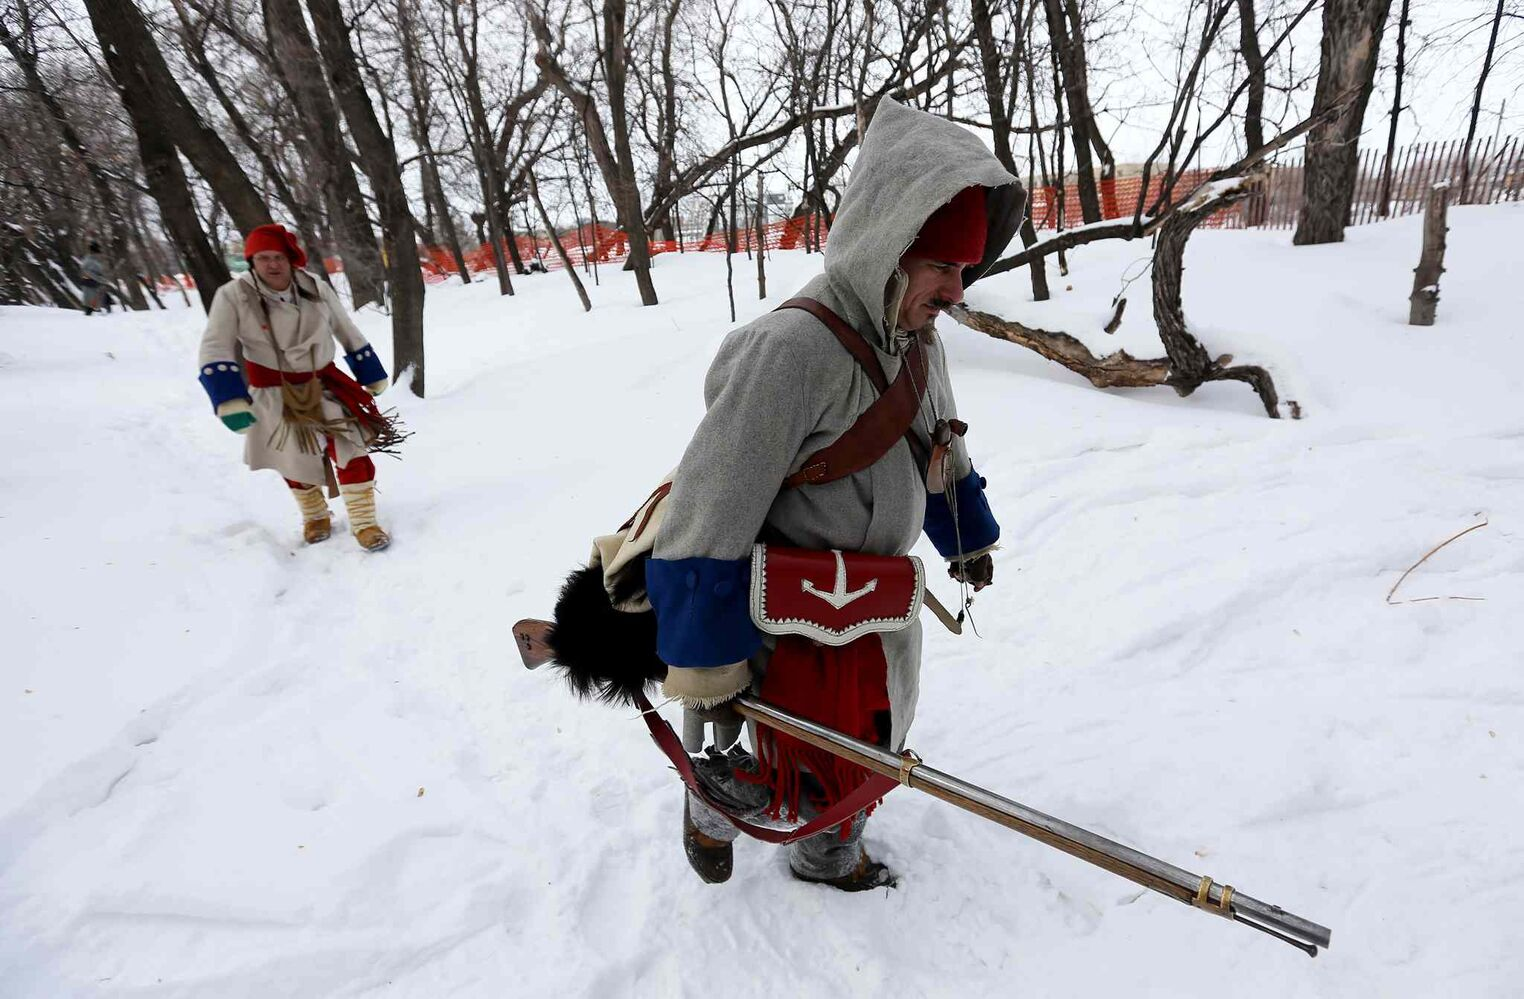 Actors in a historical reenactment between la Compagnie de La Verendrye and The Forces of Lord Selkirk trudge through the snow at The Festival du Voyageur Sunday.